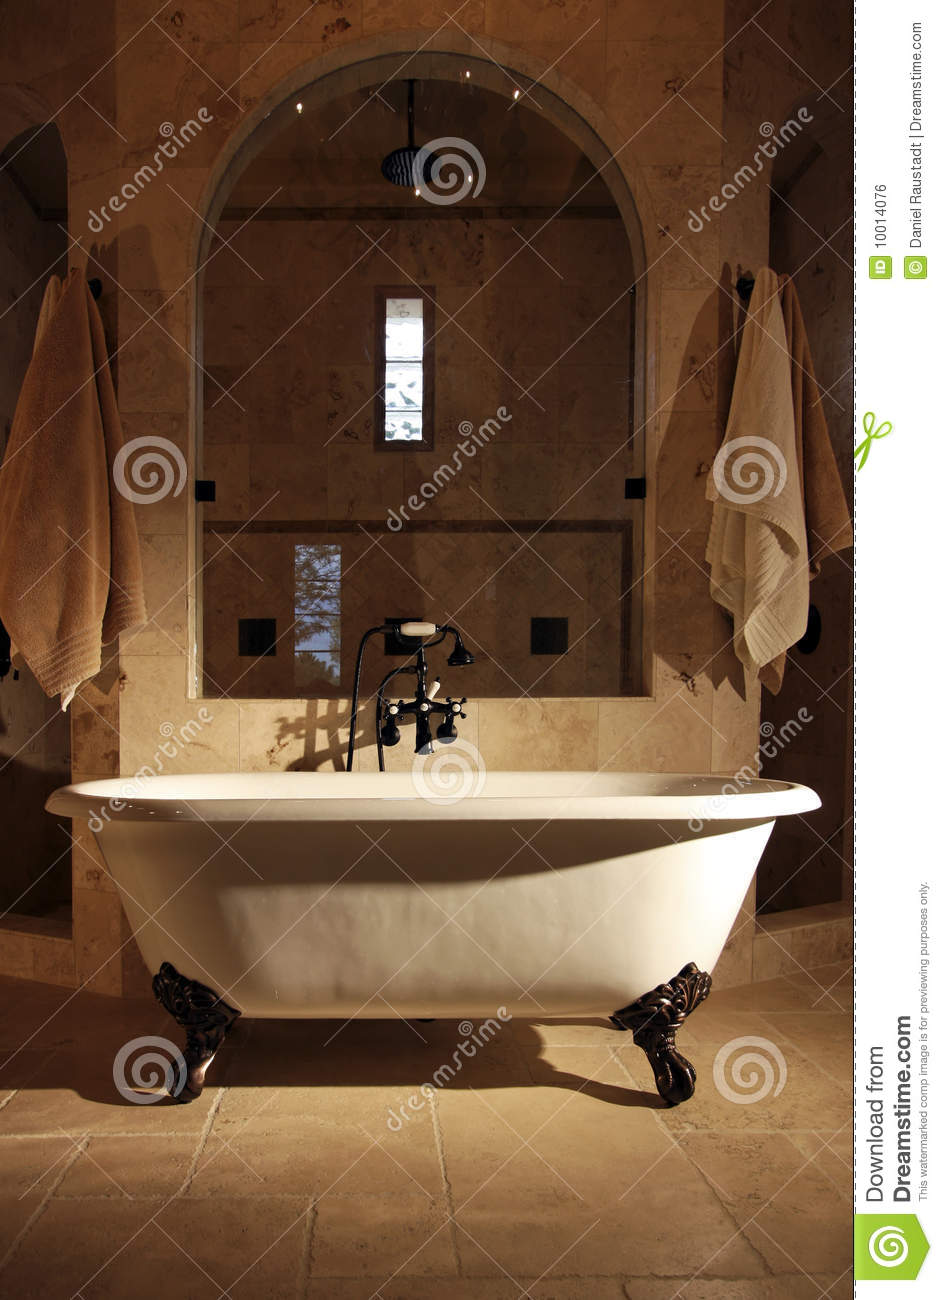 Magnificent Bathrooms with Claw Foot Tubs 943 x 1300 · 128 kB · jpeg